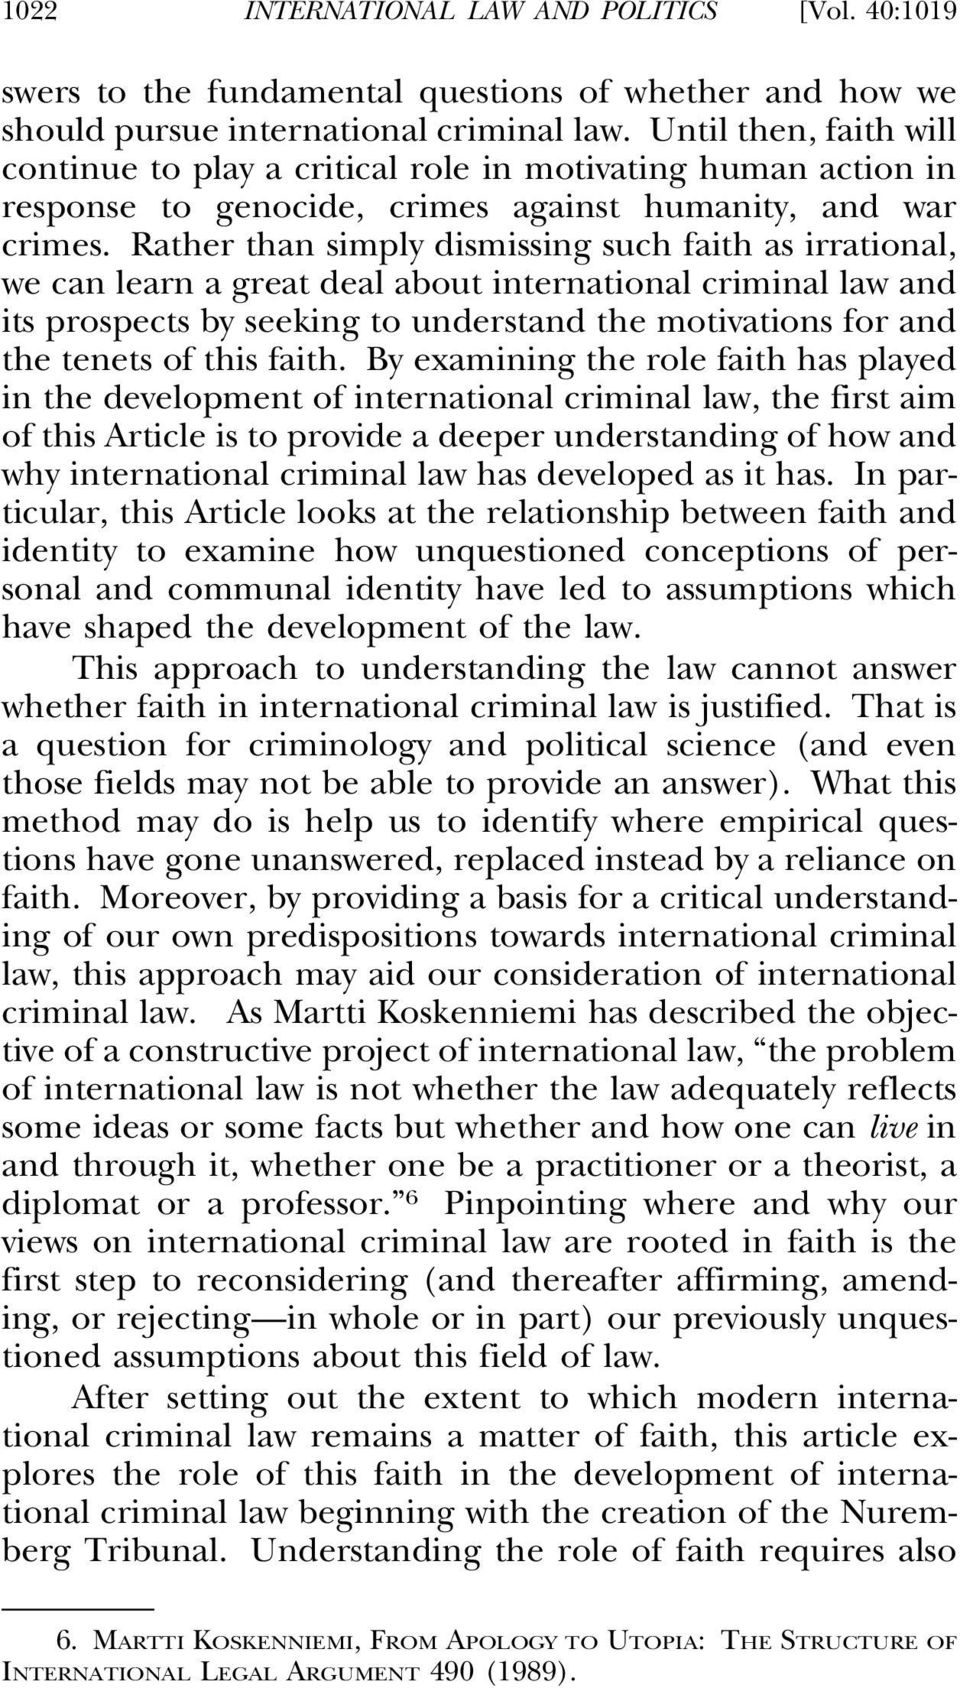 Rather than simply dismissing such faith as irrational, we can learn a great deal about international criminal law and its prospects by seeking to understand the motivations for and the tenets of